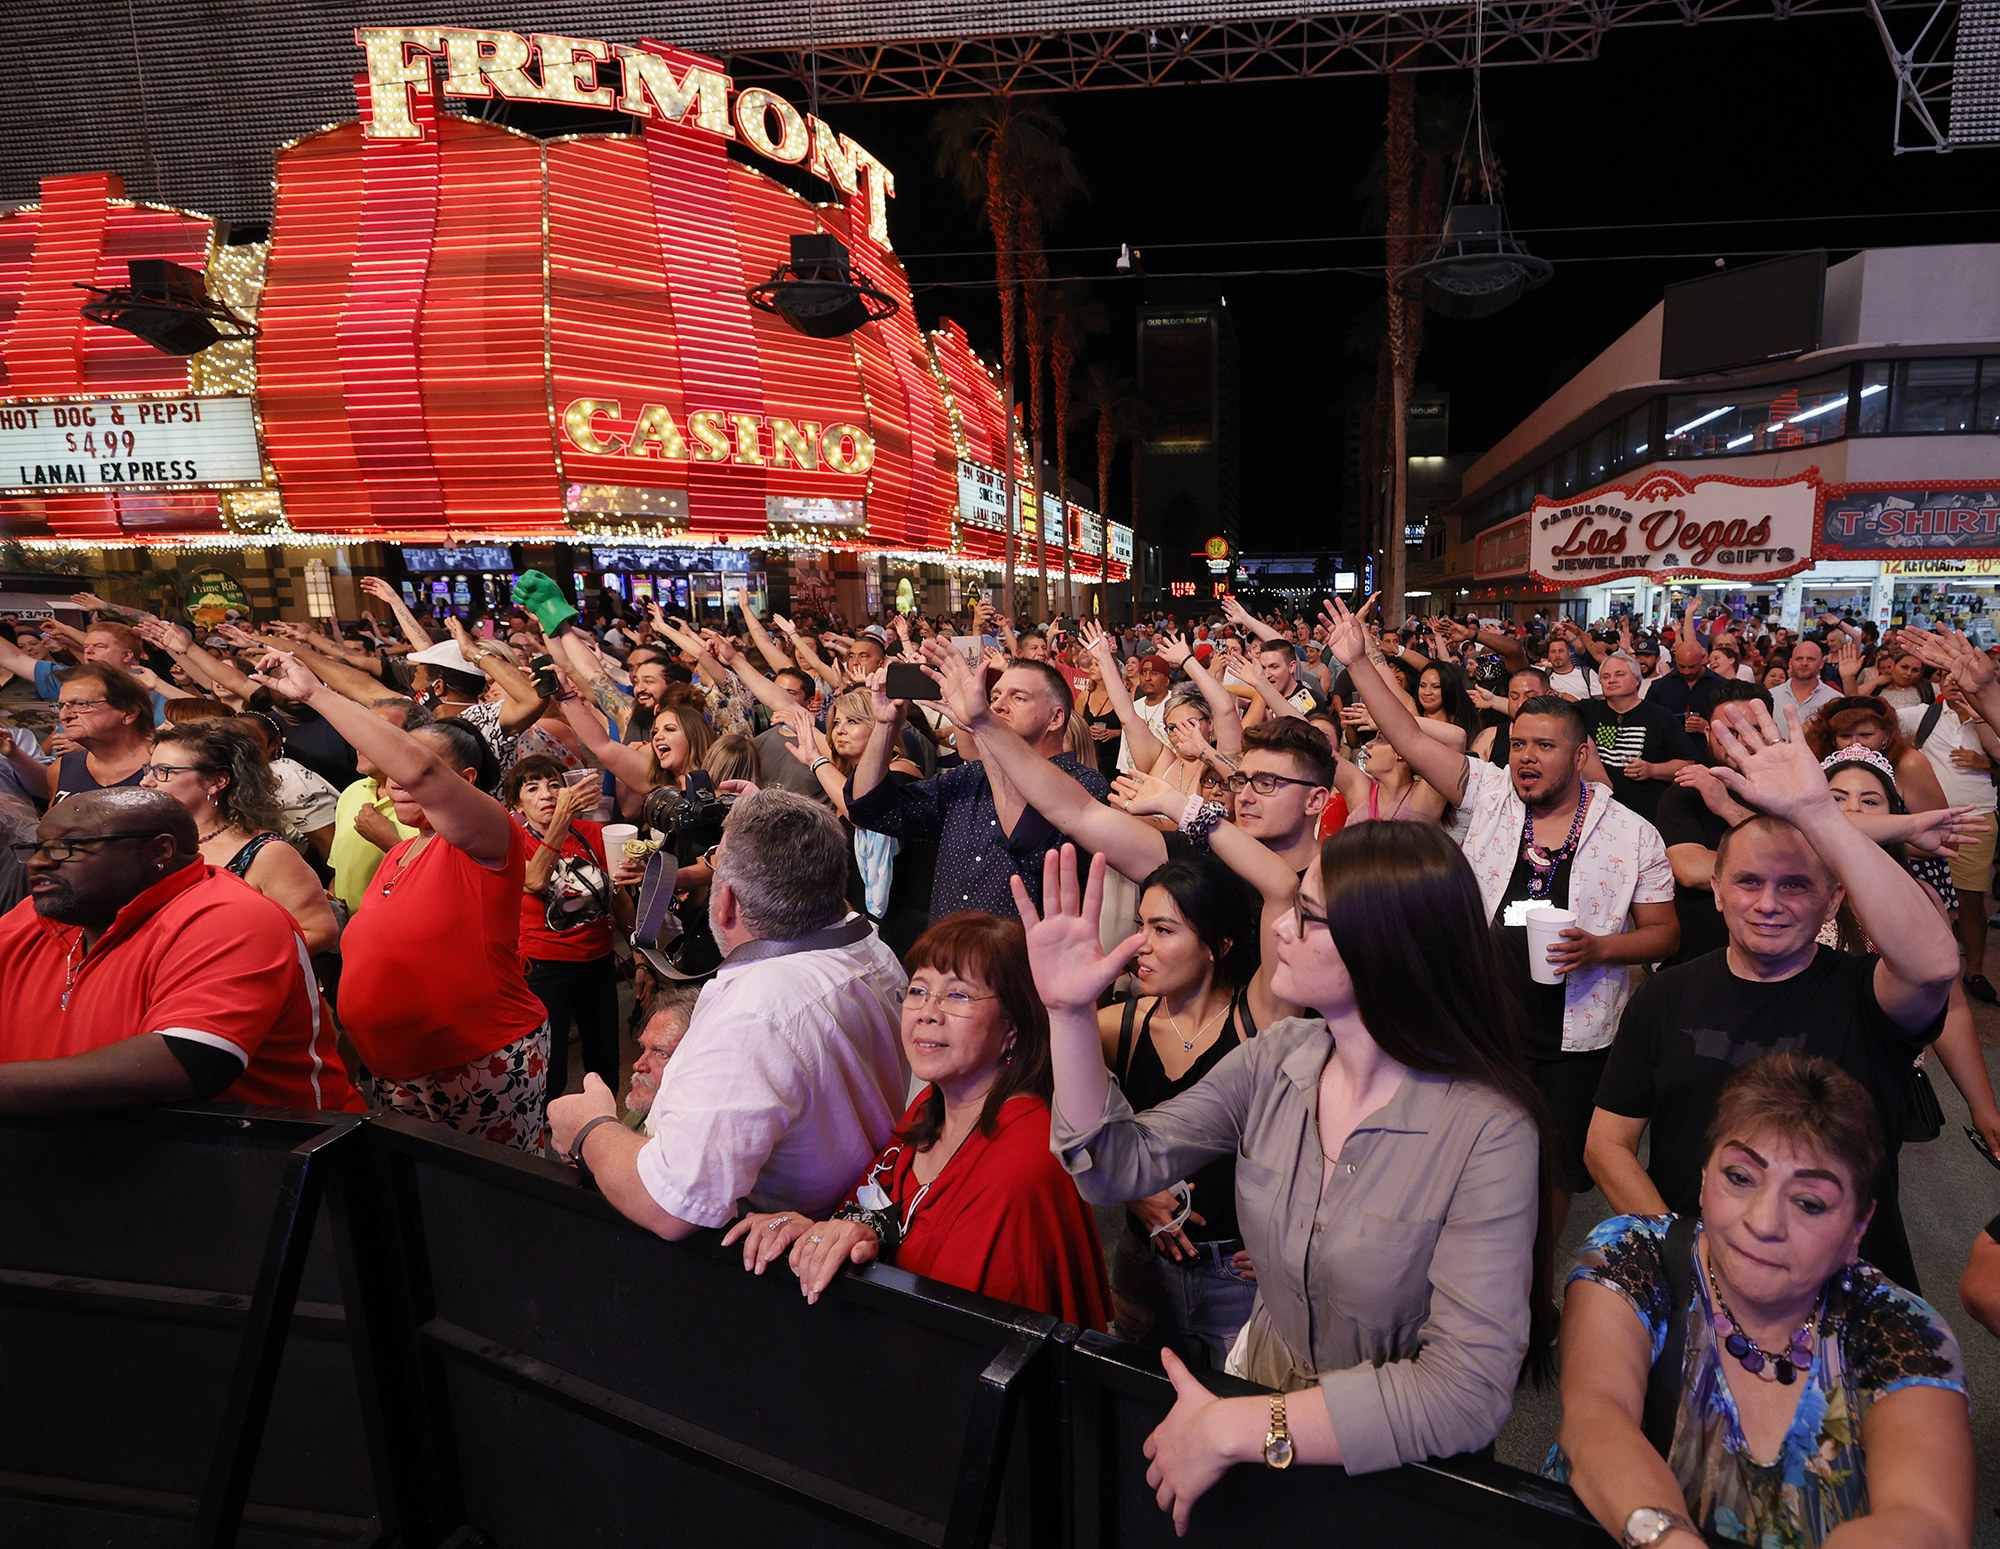 A crowd of people raise their hands as they watch a concert on a packed street in Las Vegas